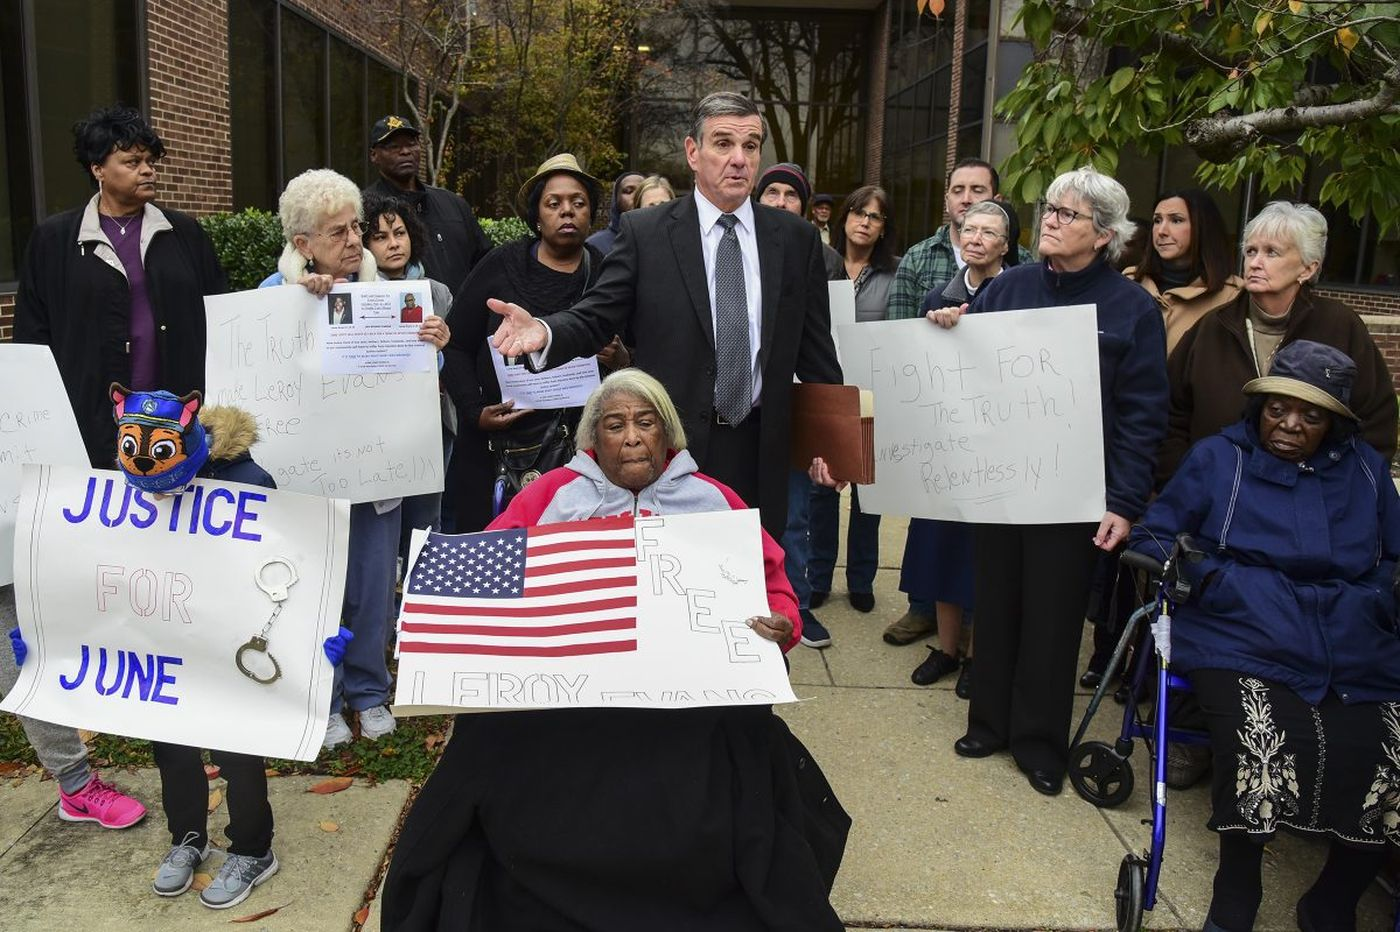 Leroy's family and supporters at a recent protest, asking for a re-examination of the evidence against him